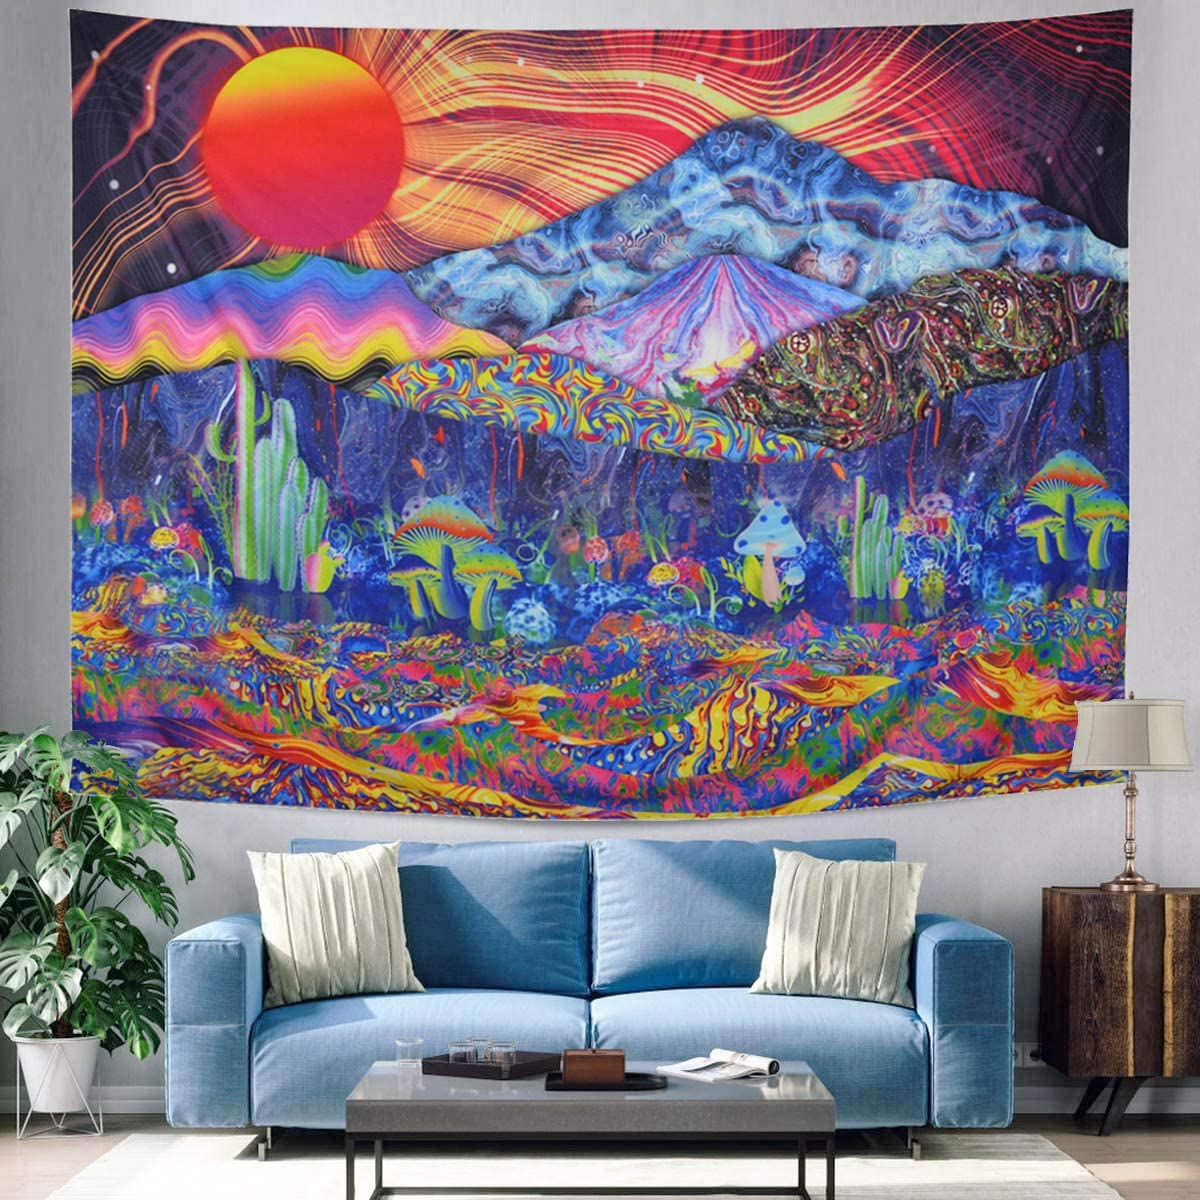 "ZCOINS Psychedelic Tapestry Trippy Mushrooms Tapestry Hippie Abstract Mountain Weed Tapestry Colorful Nature Landscape Tapestry Trippy Room Décor Trippy Poster for Living Room Bedroom (M-51"" x 59"")"